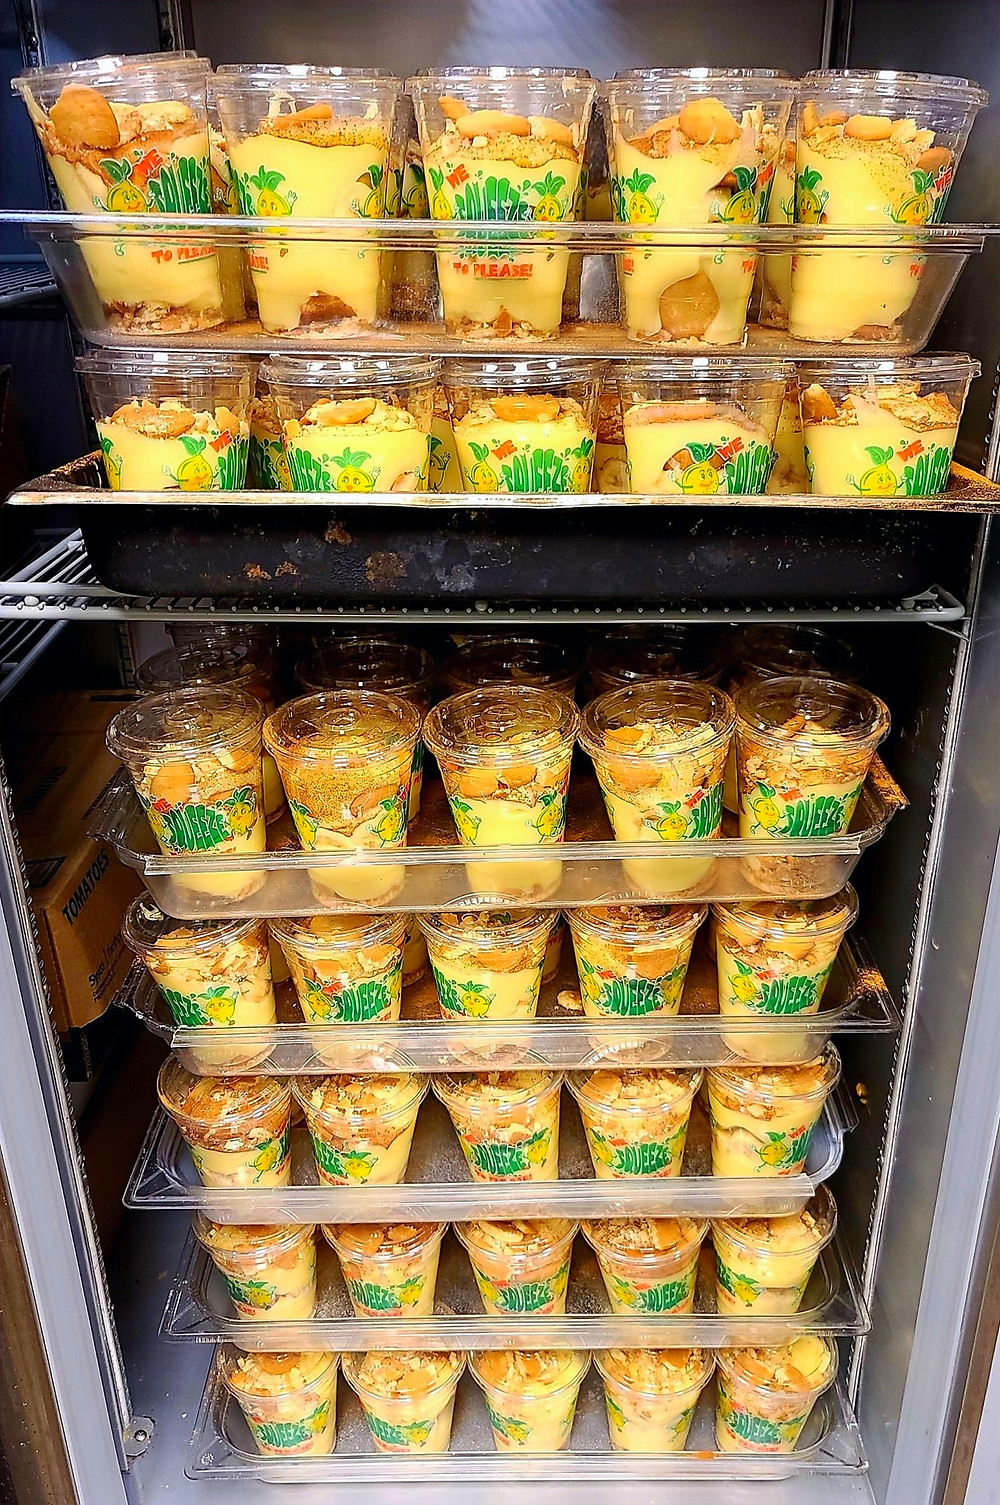 Now that's a LOTTA Banana Puddin'!